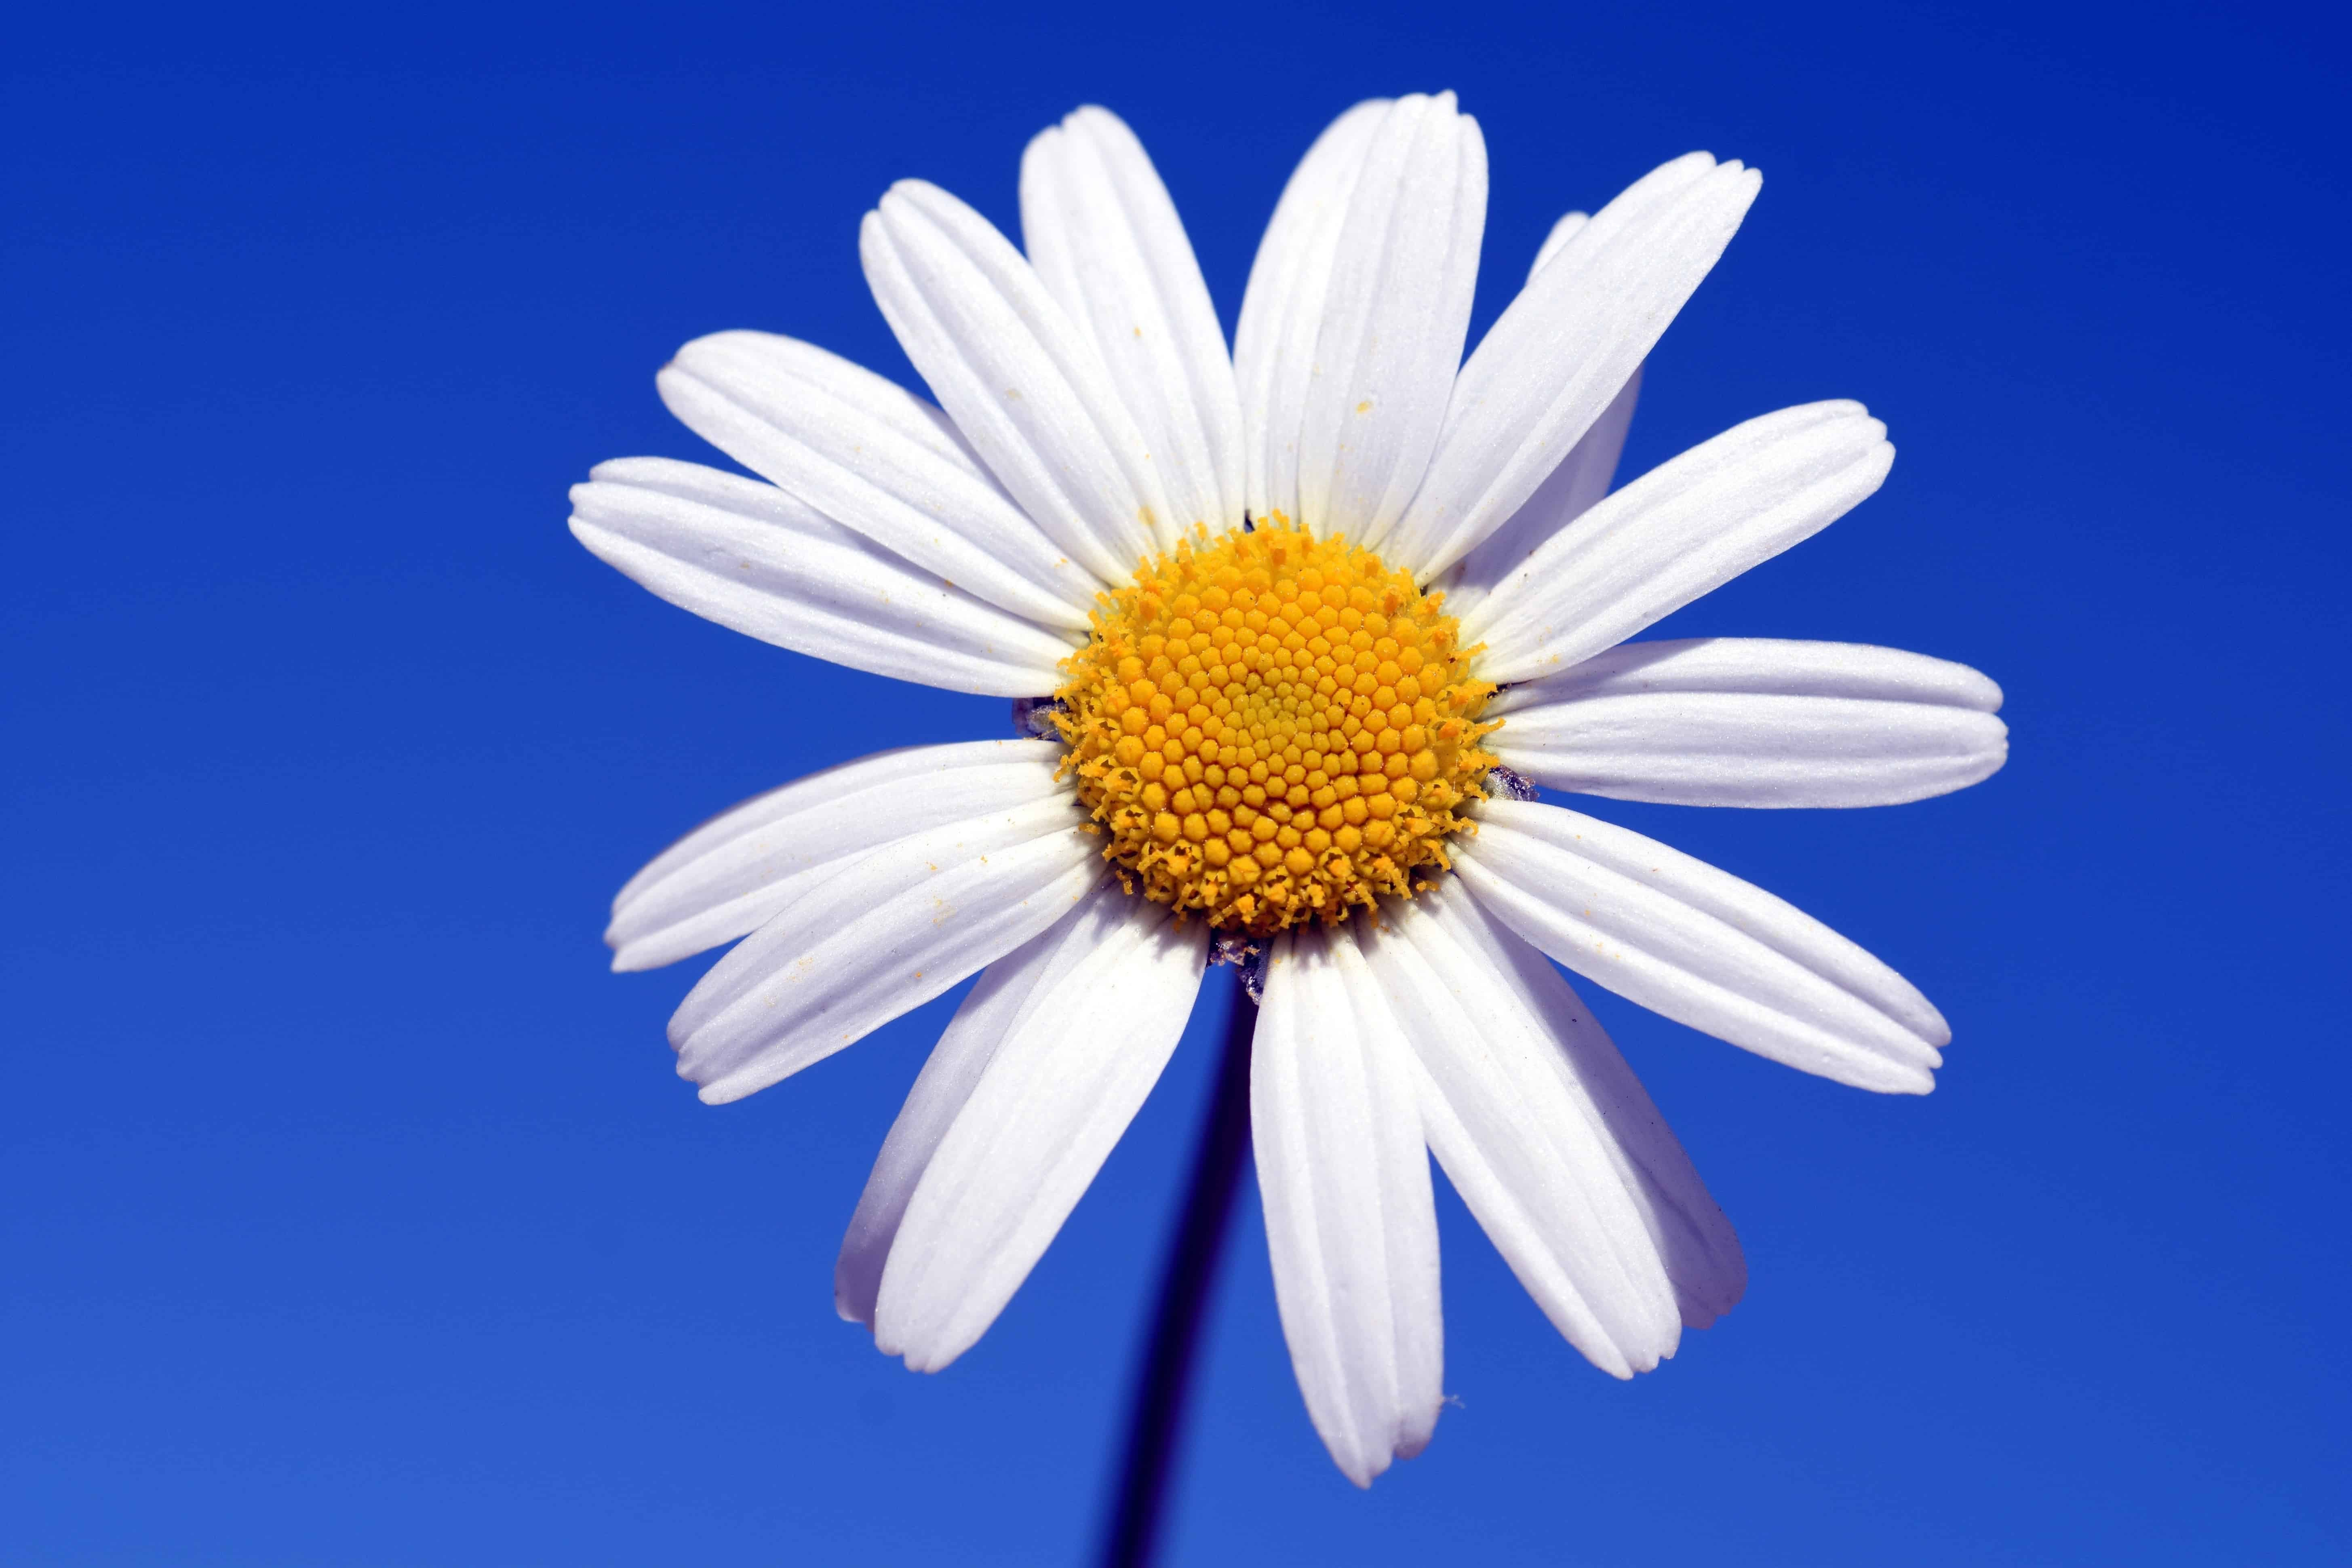 Free picture: blue sky, nature, white flower, horticulture, plant ...